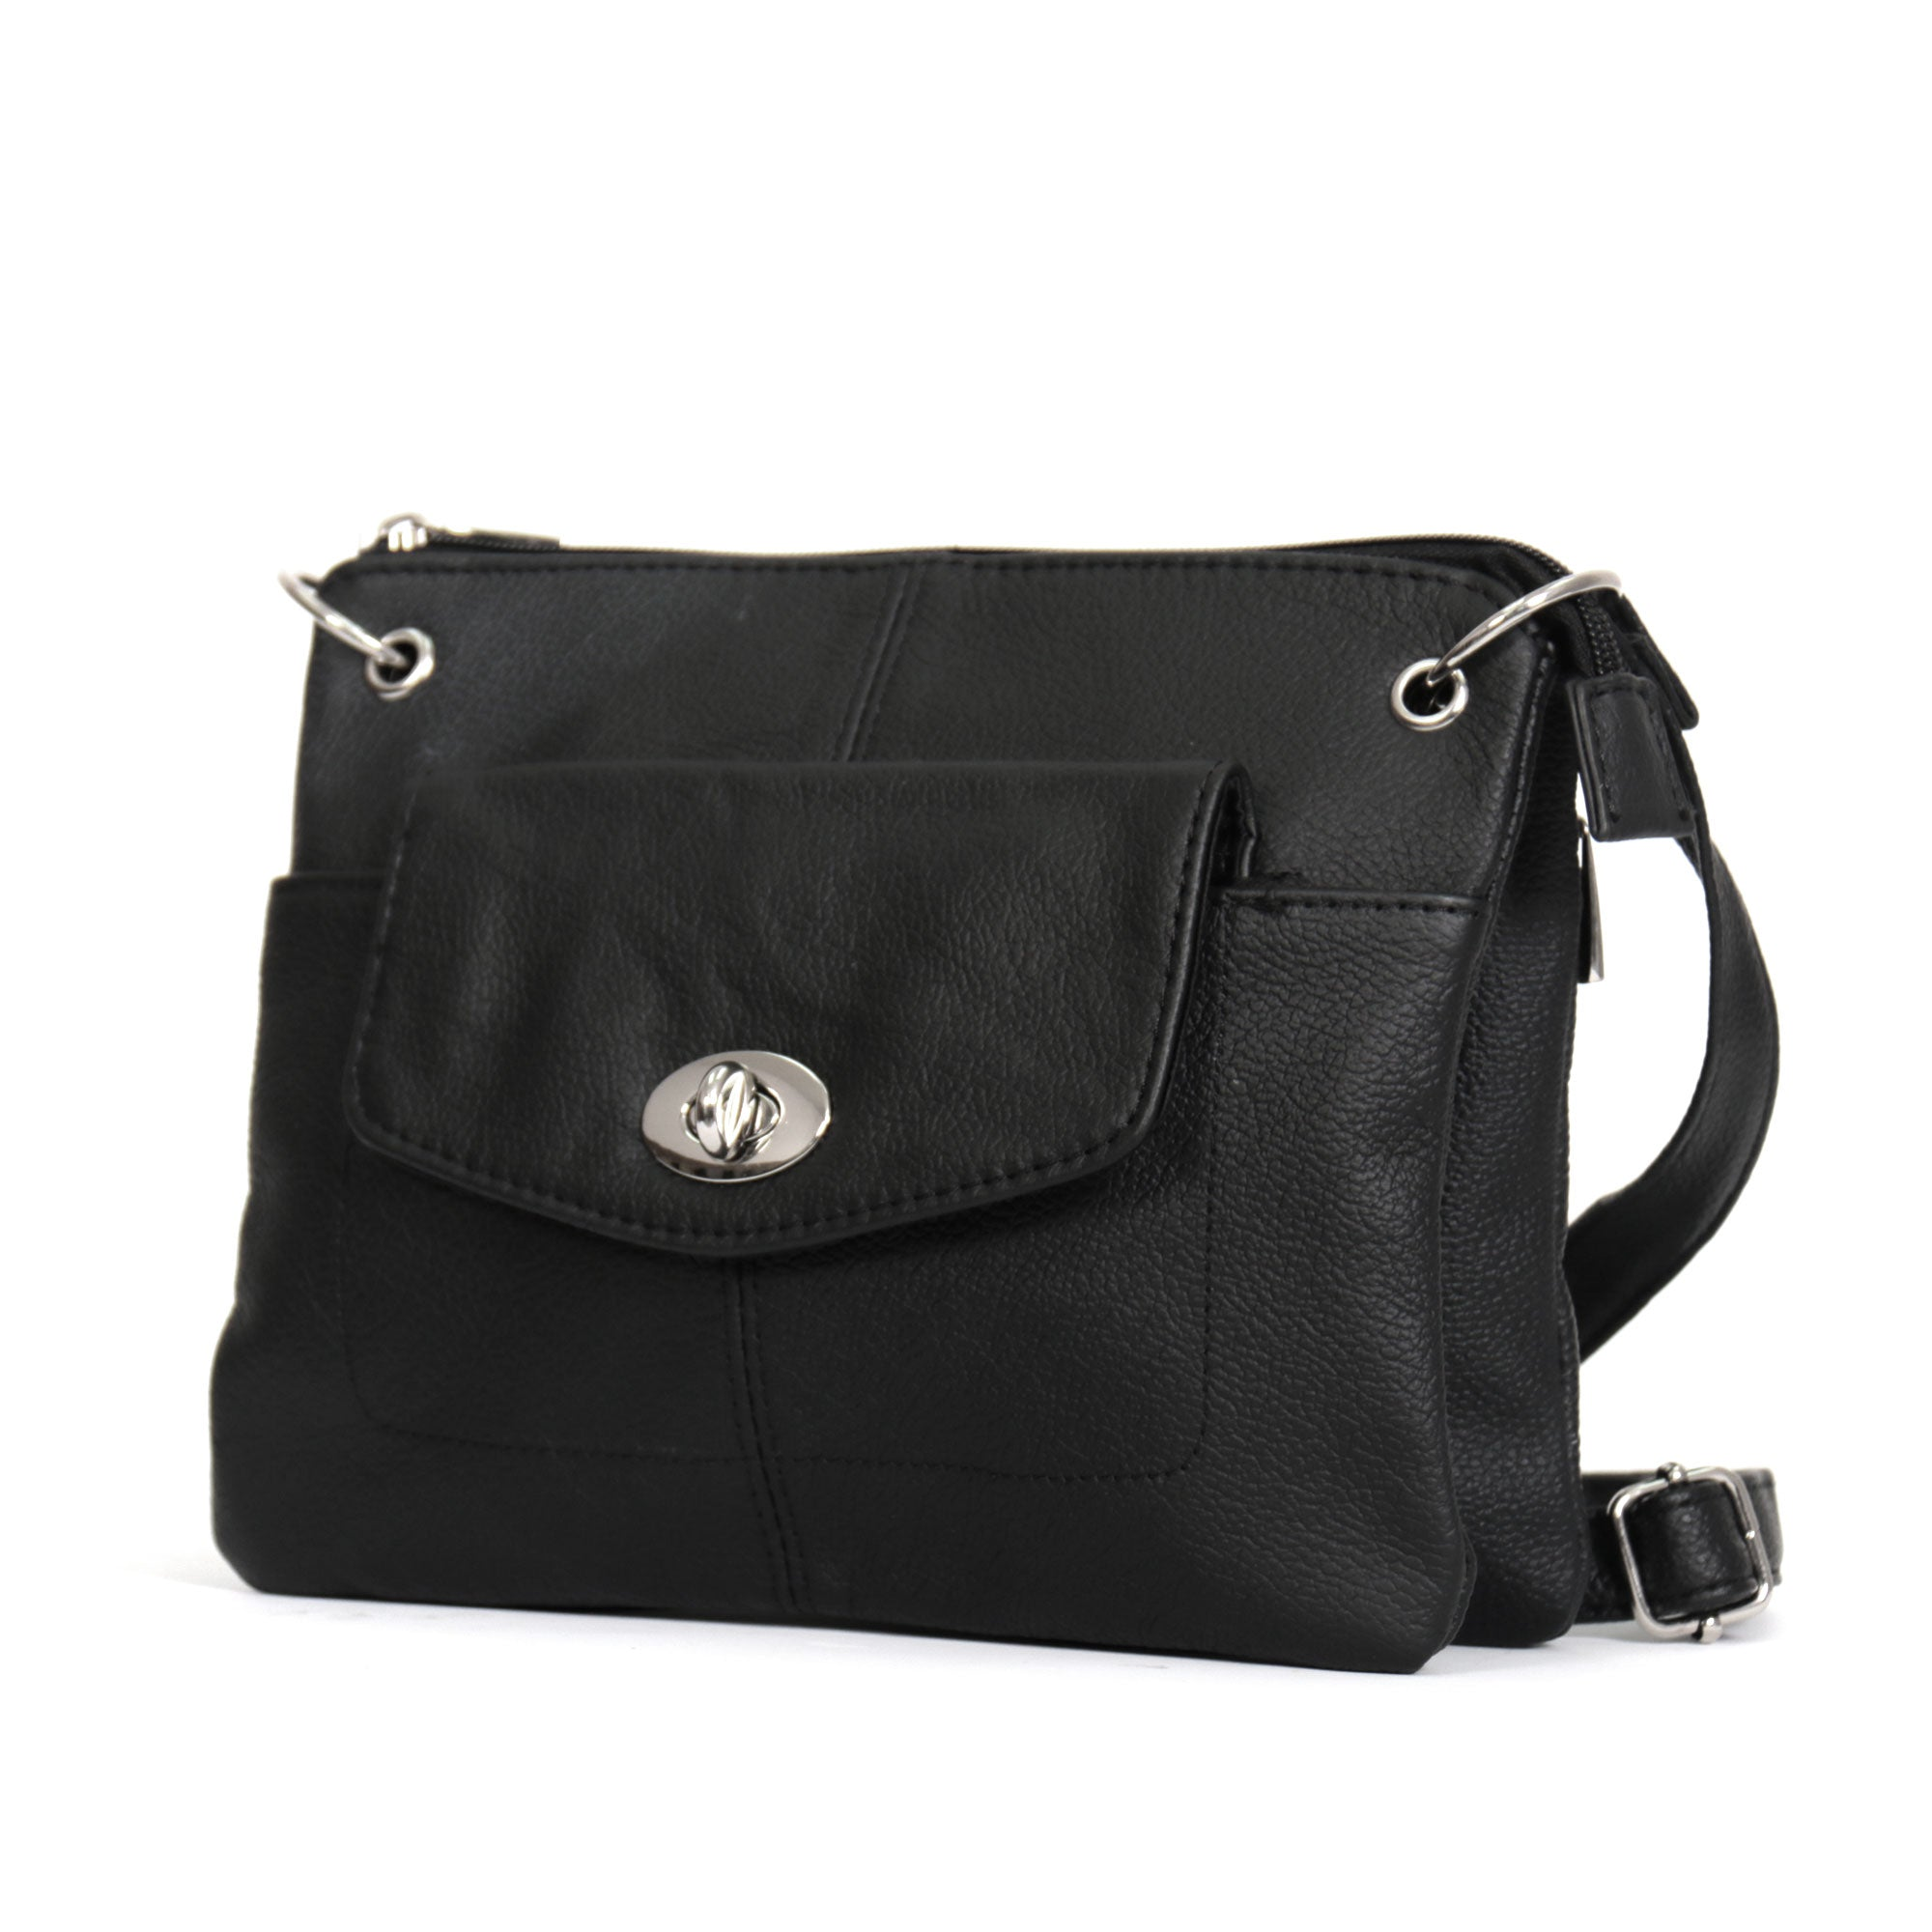 Hot Leathers Small Purse with Twist Lock